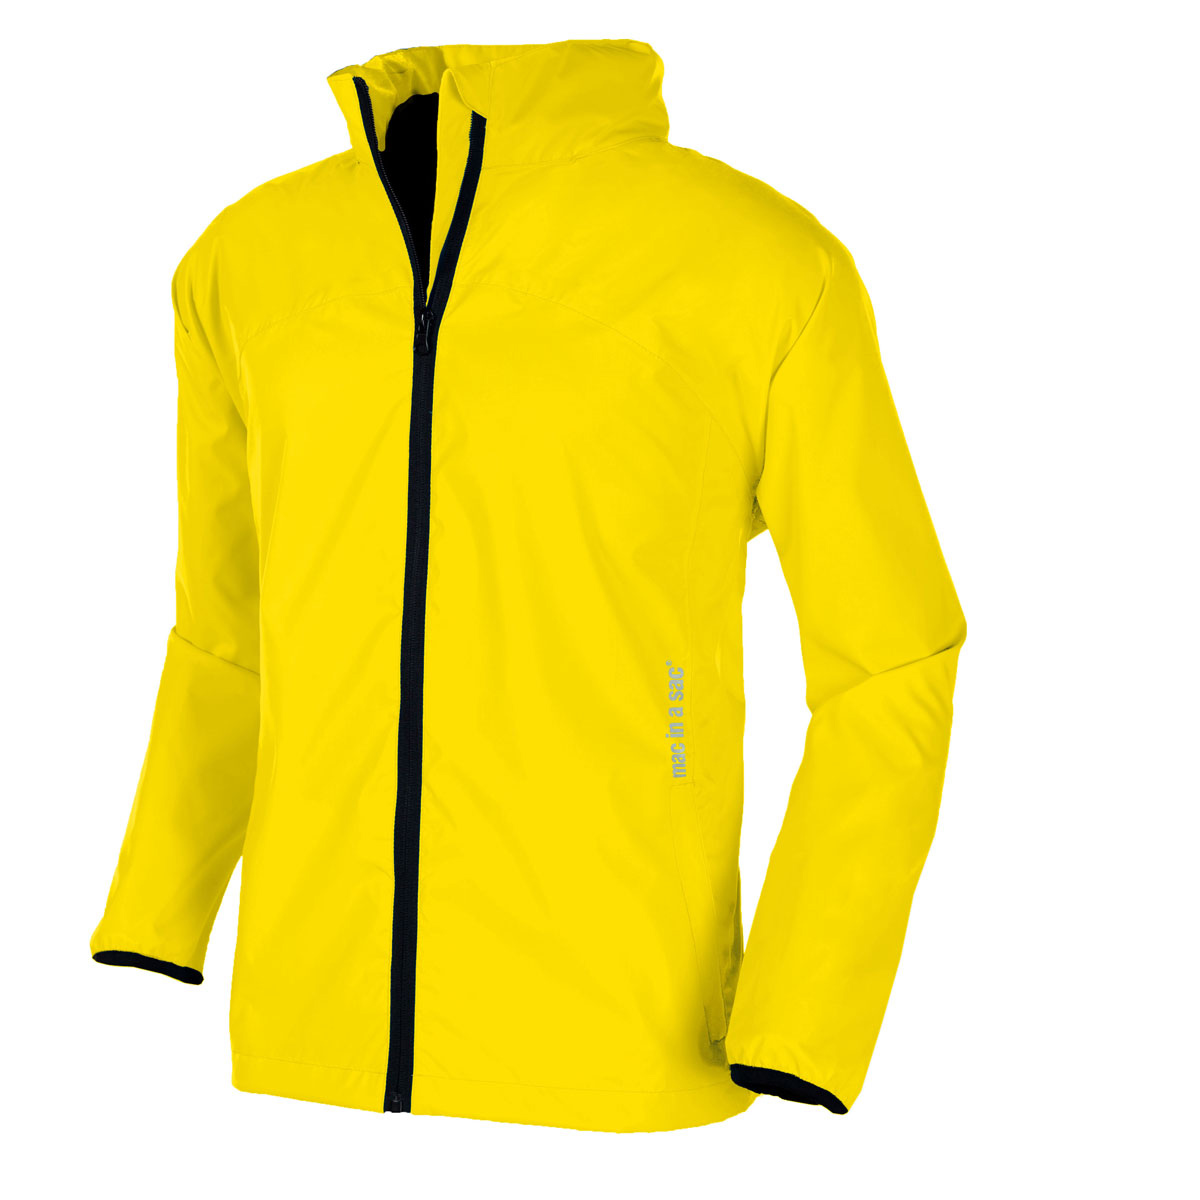 Mac in a Sac Regenjacke - Canary Yellow - L